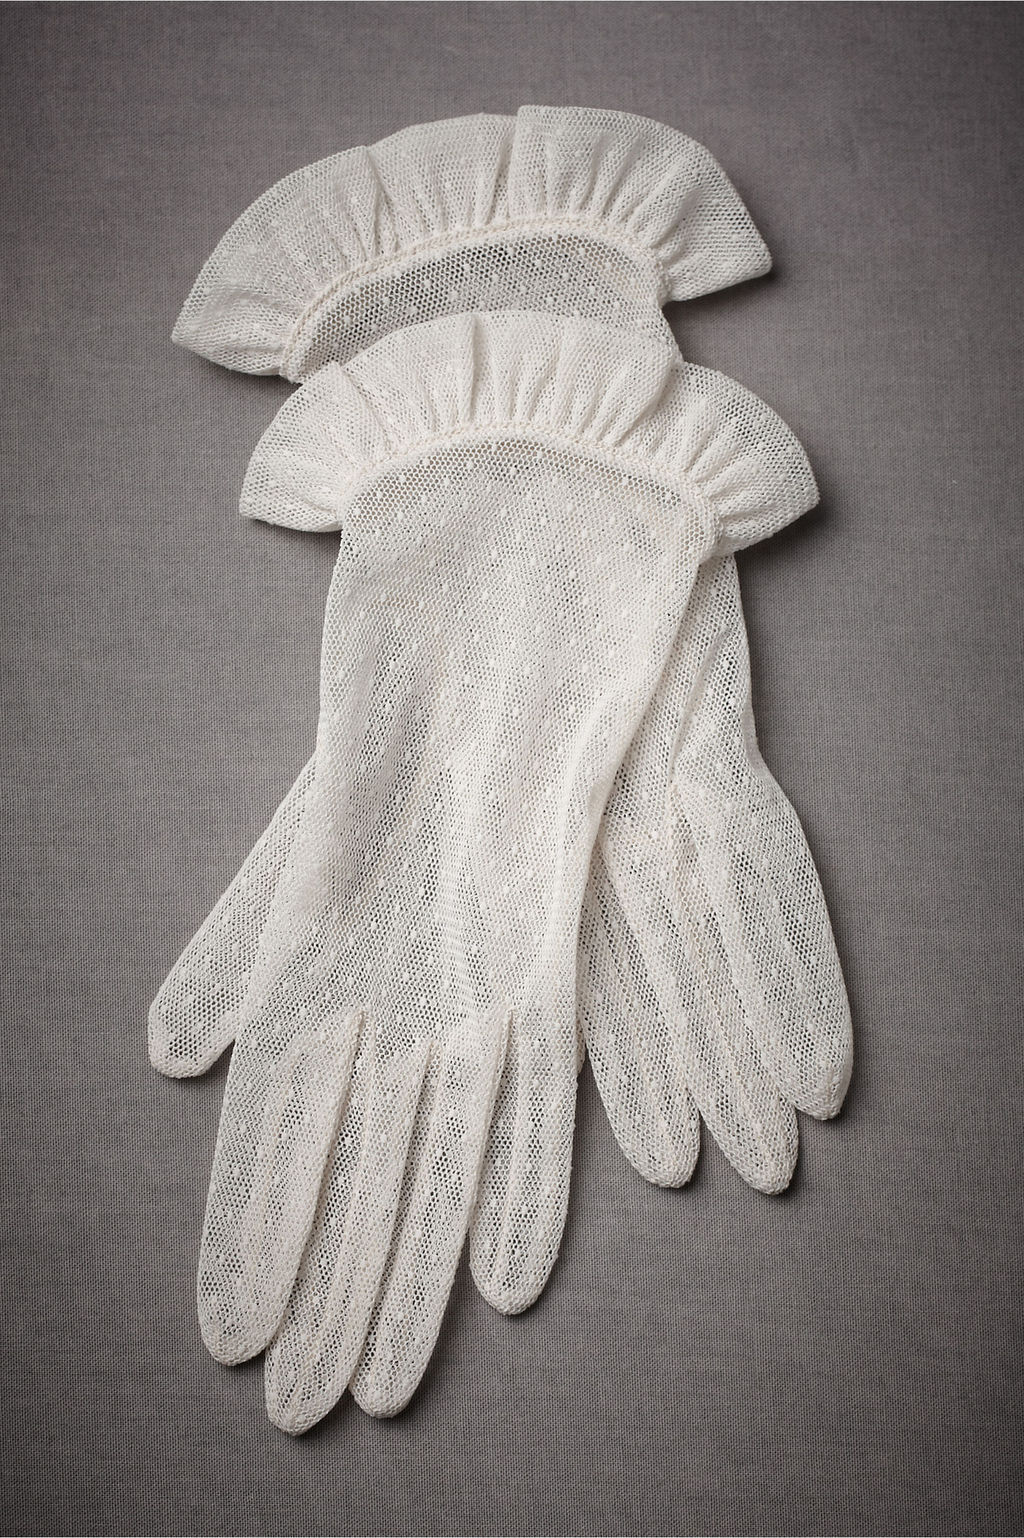 Bridal-accessories-vintage-inspired-gloves-5.full